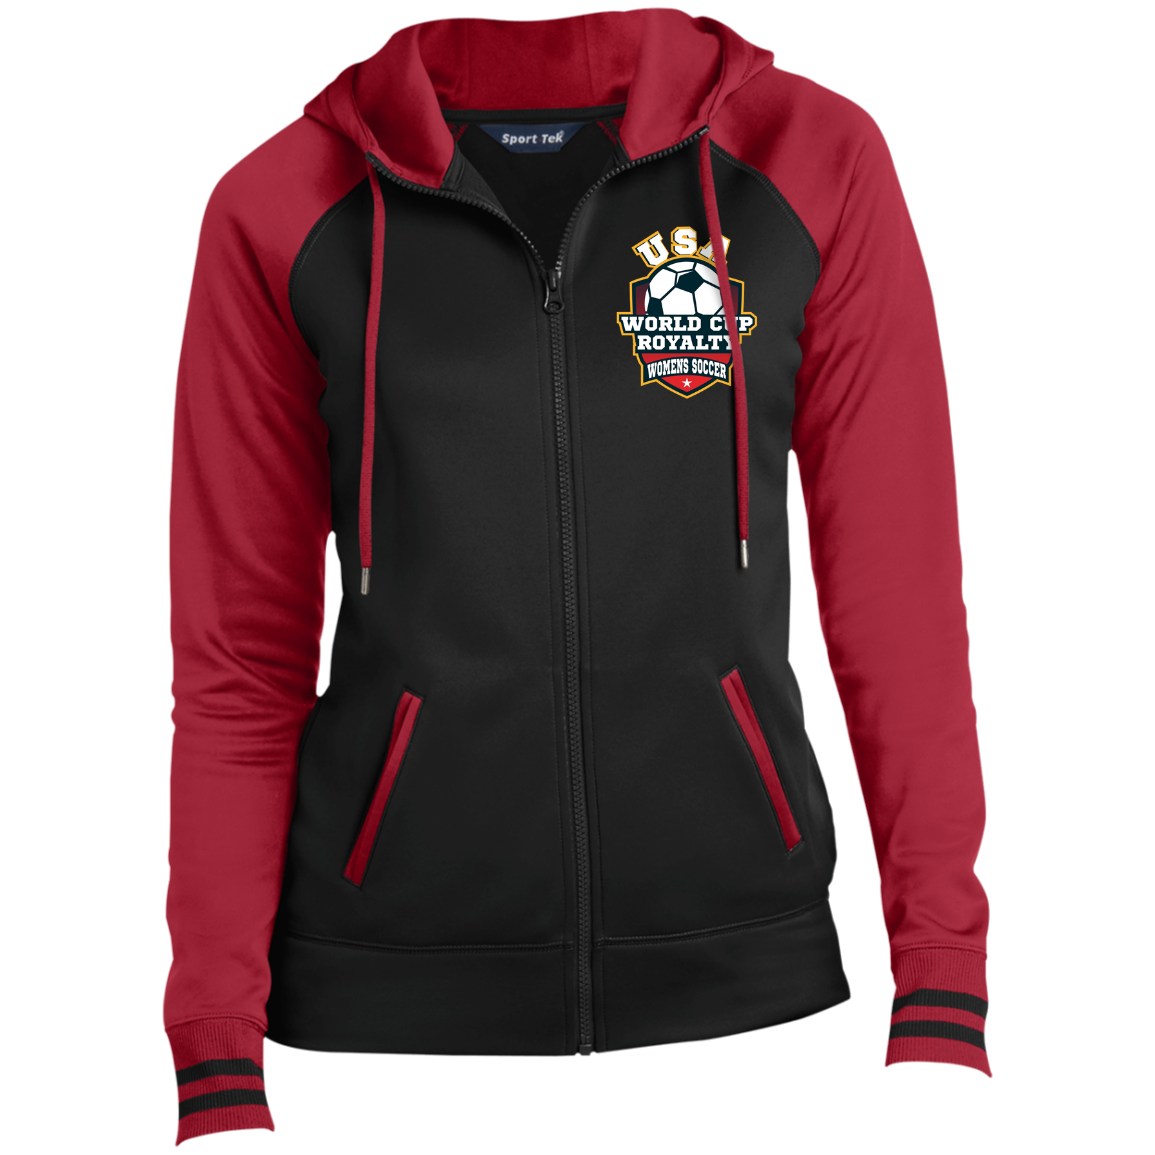 Ladies USA World Cup Royalty Soccer Moisture Wick Full-Zip Hooded Jacket